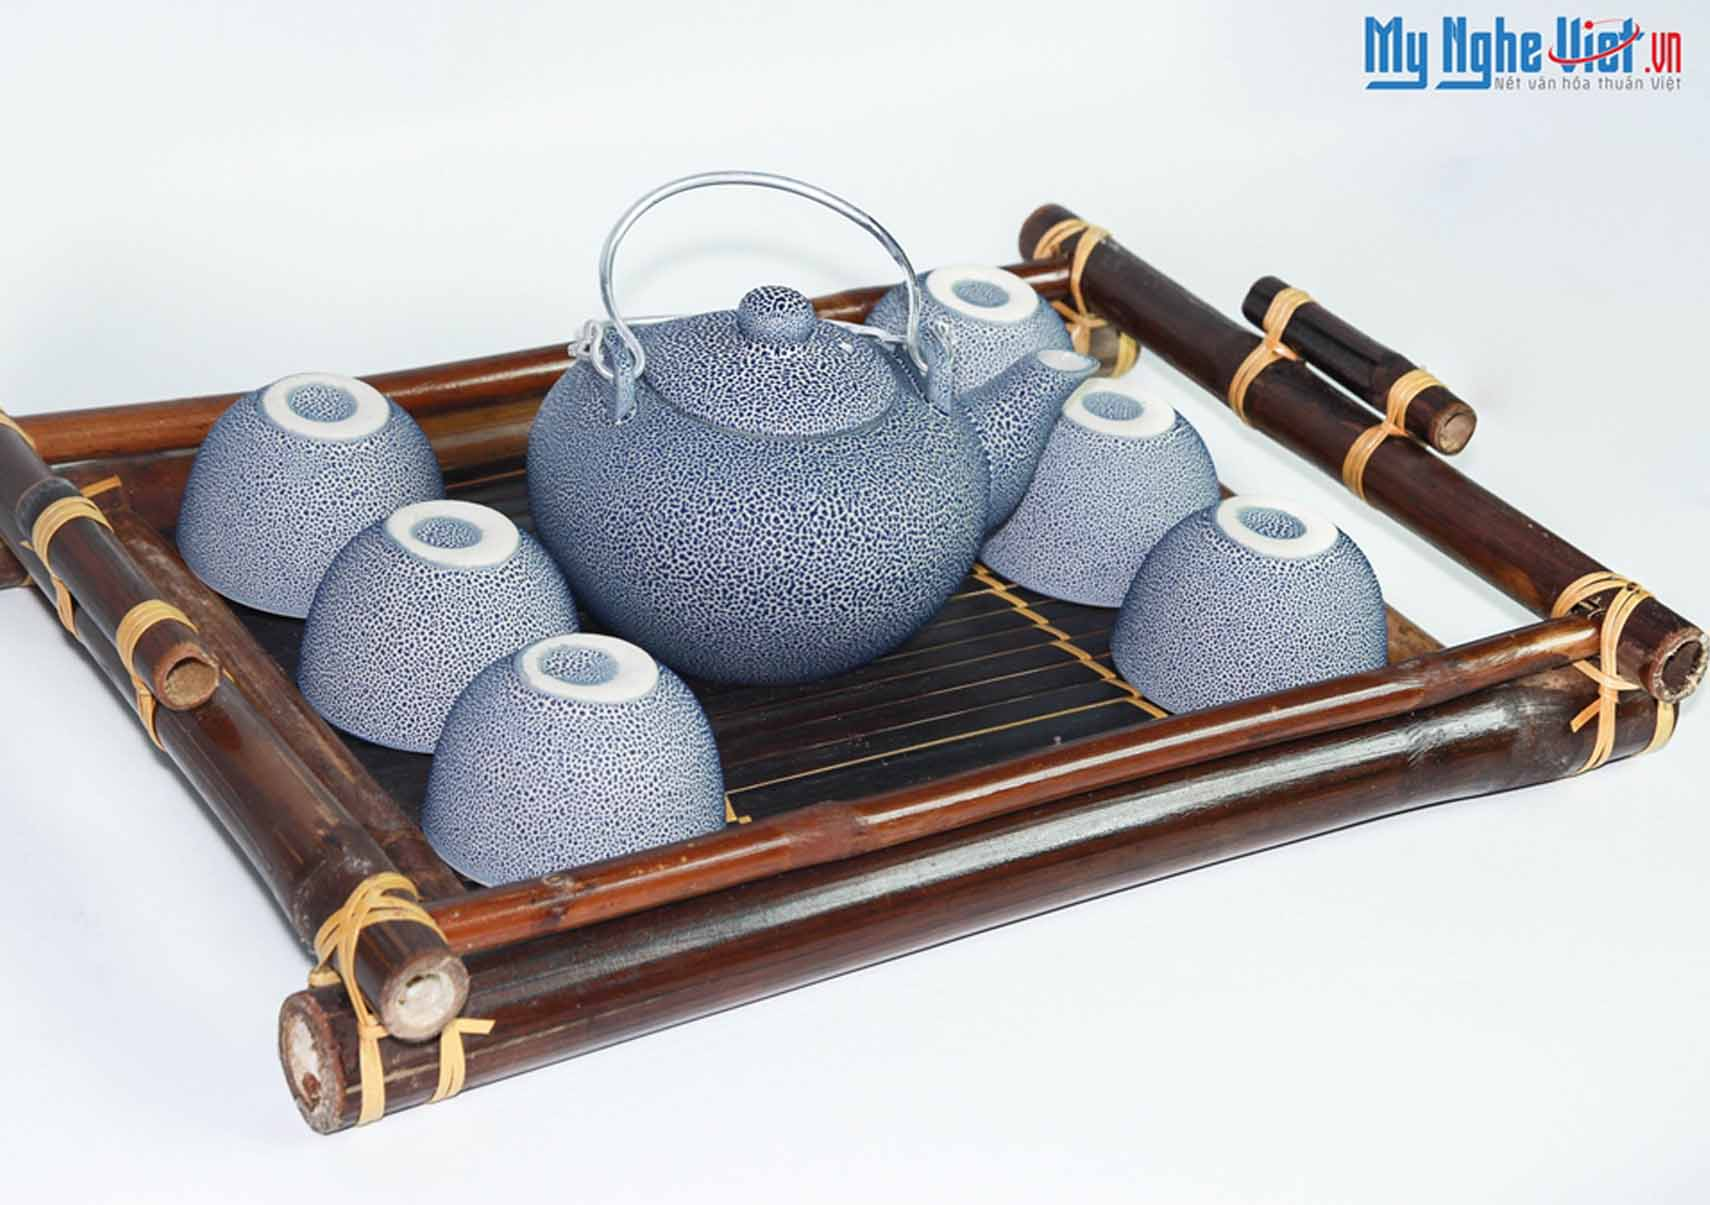 Bat Trang Ceramic Tea Set Premium Reef MNV-BT151